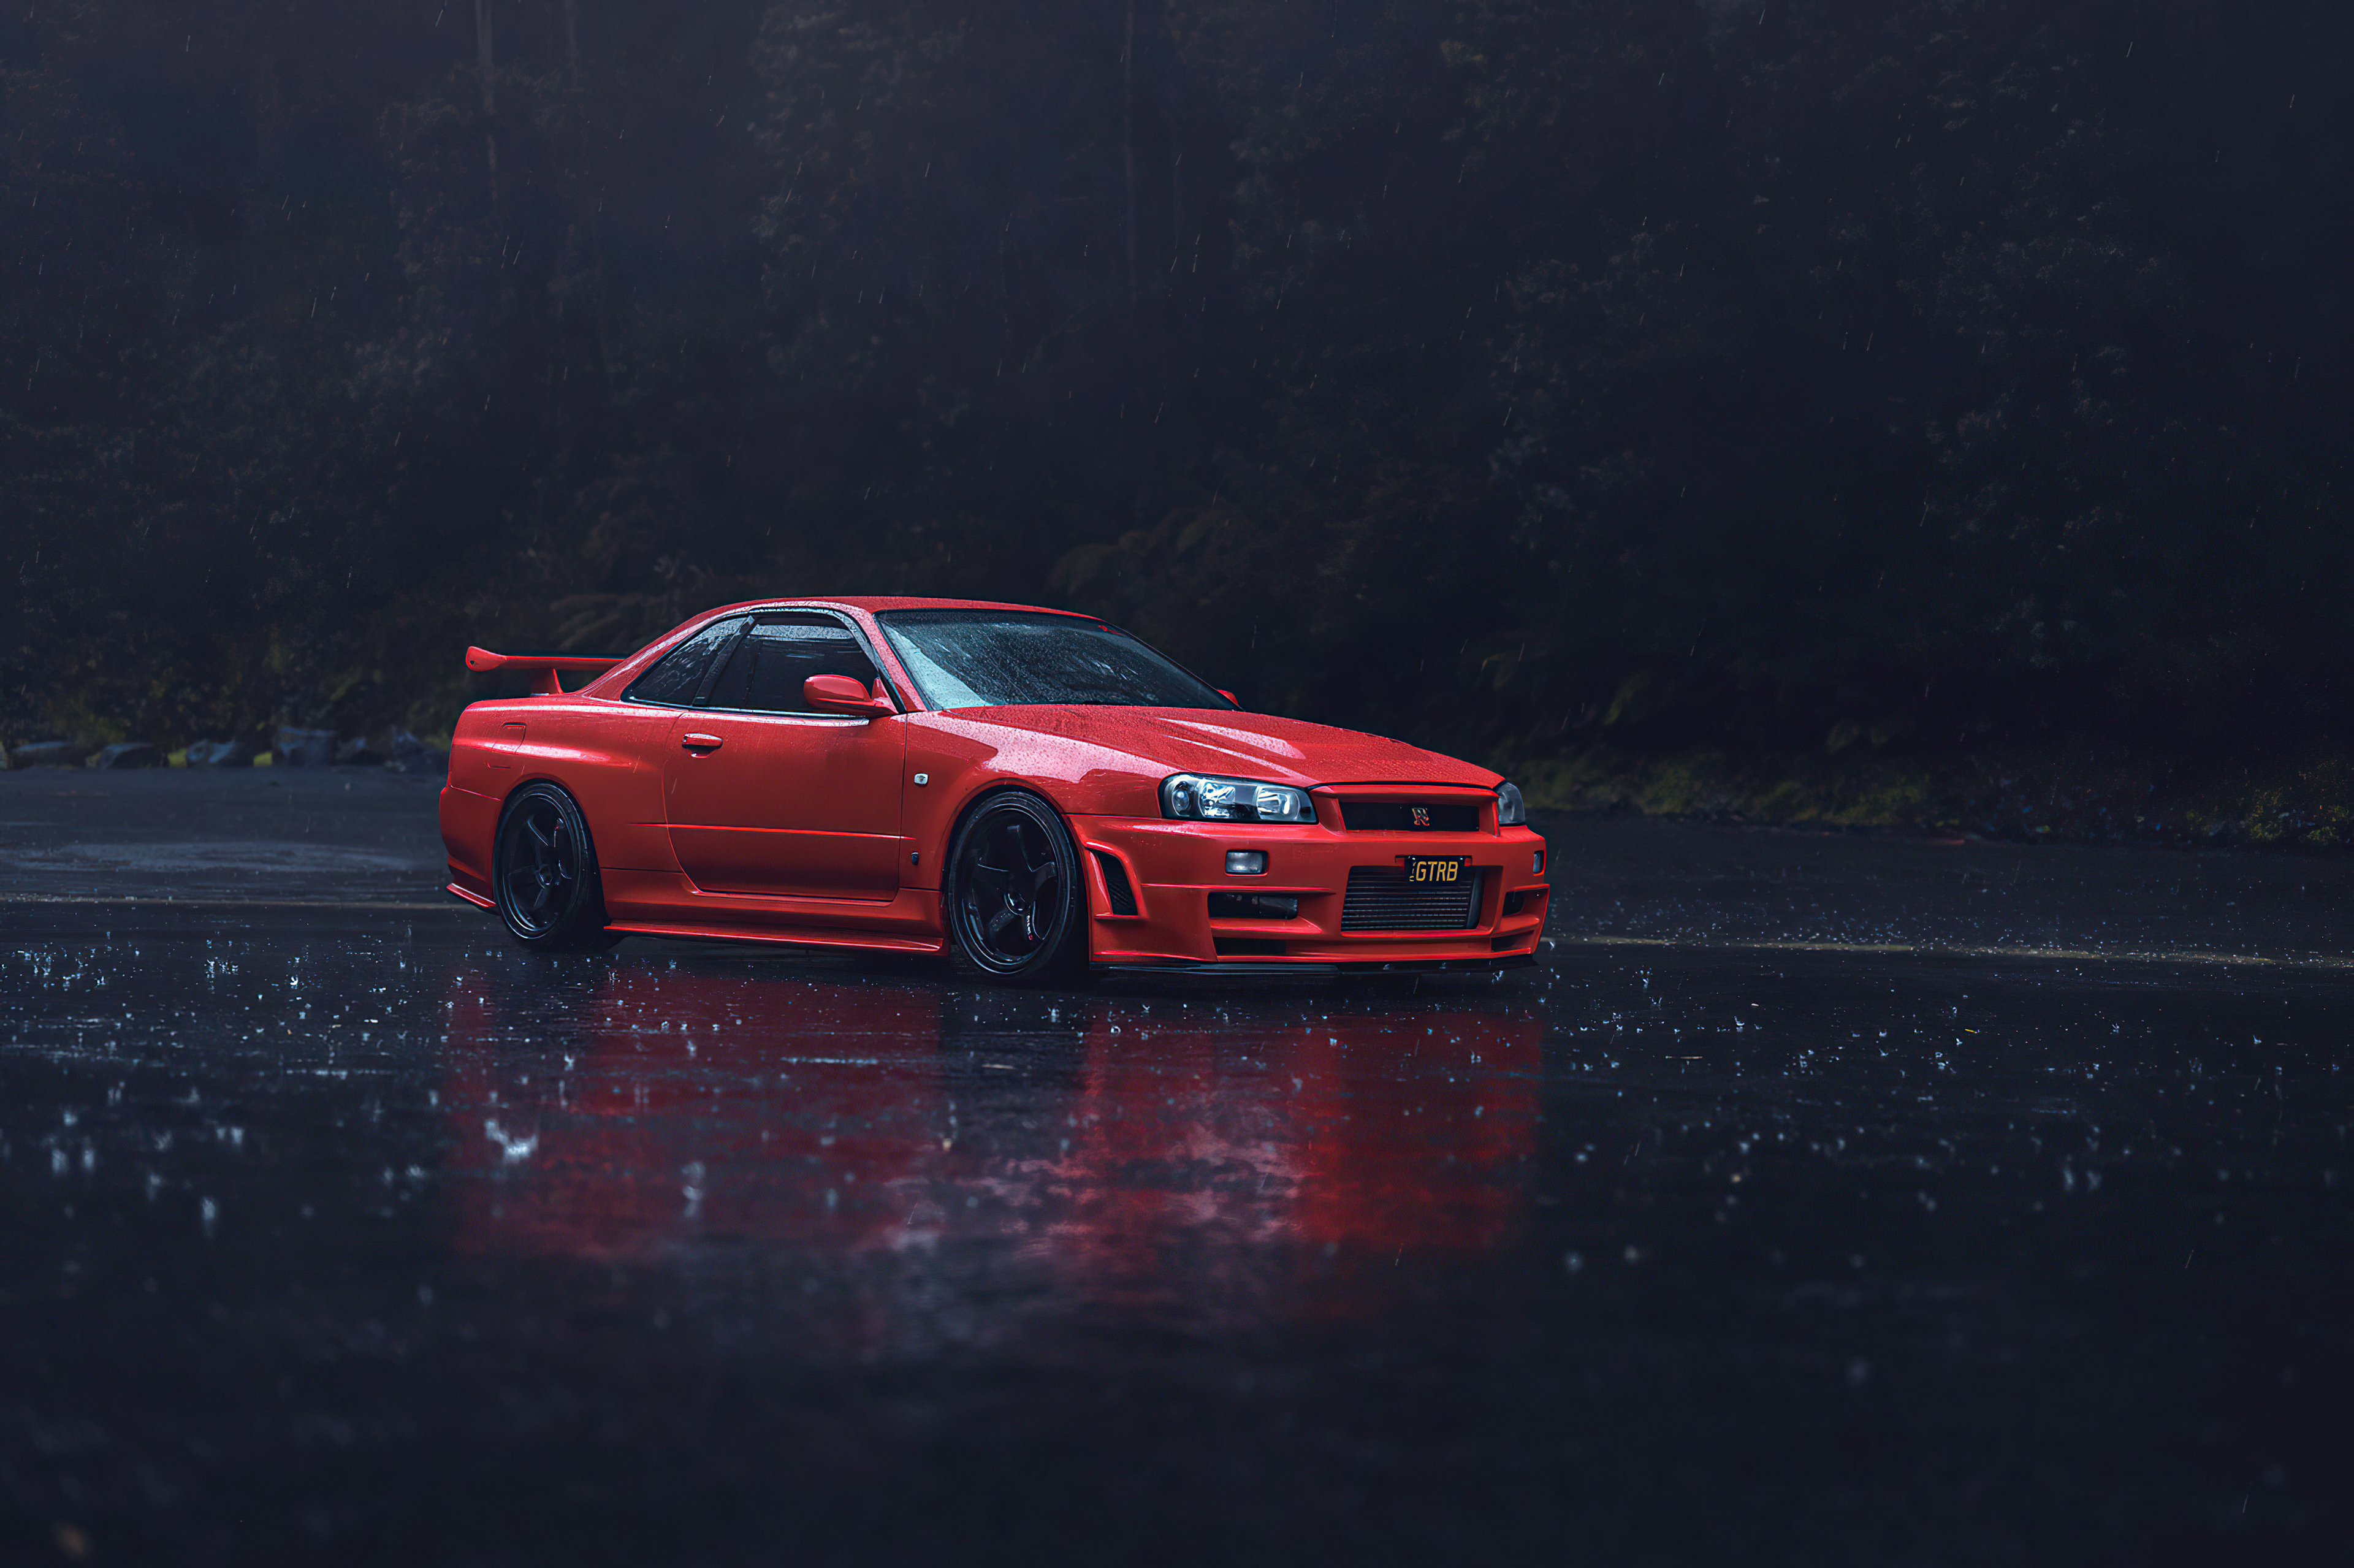 Red Nissan GTR R34, HD Cars, 4k Wallpapers, Images ...